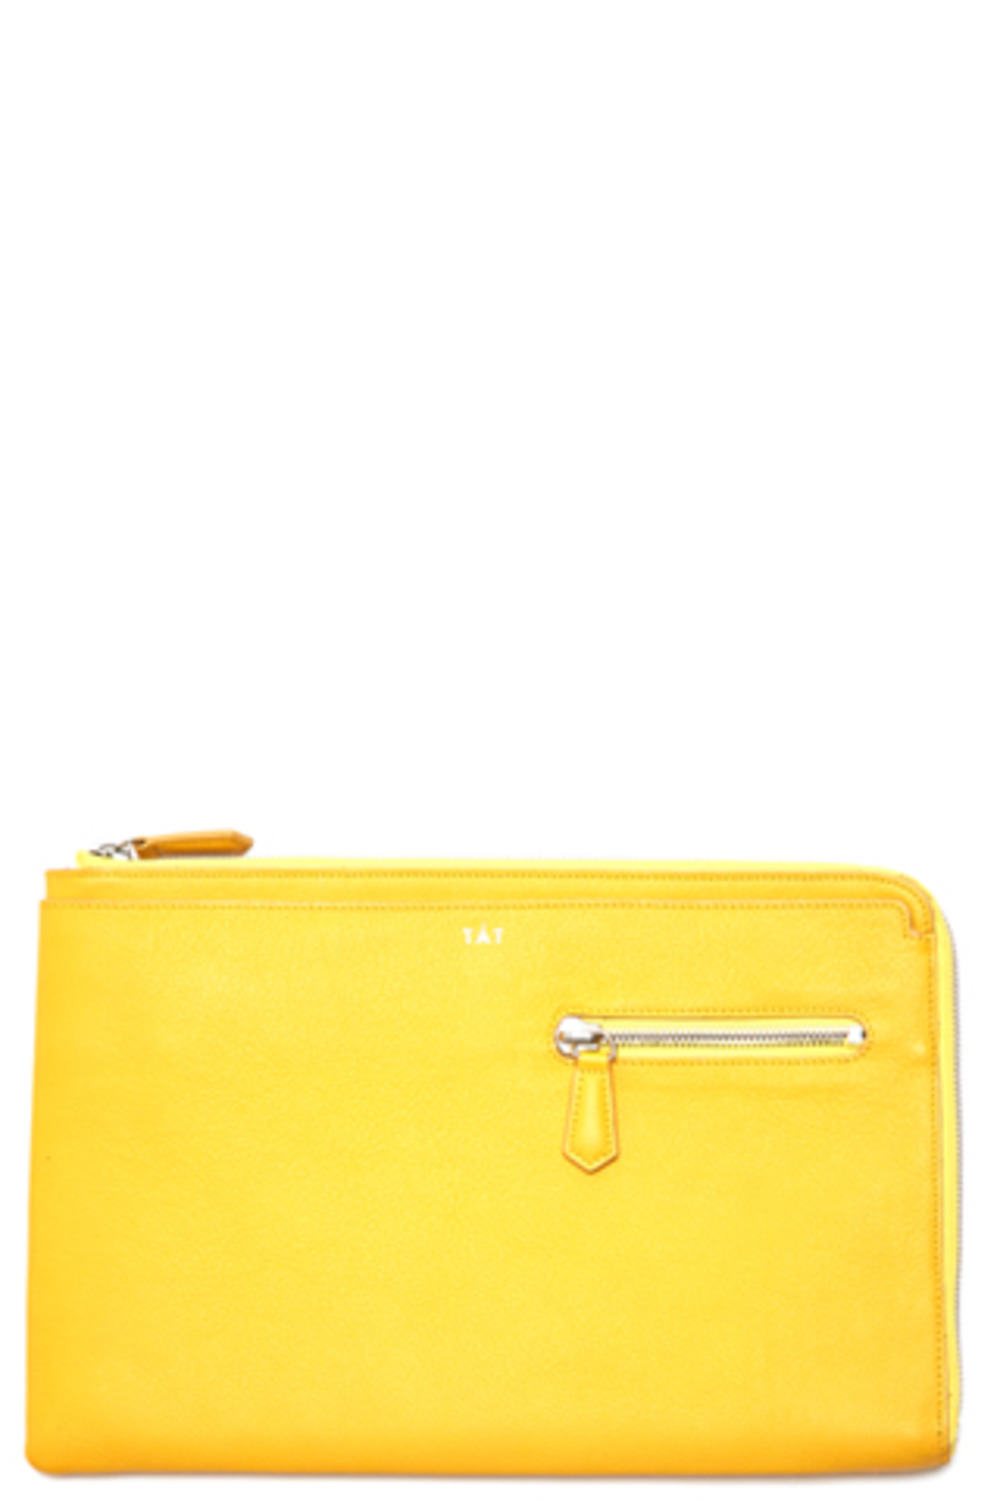 YELLOW Two Side Zipper Clutch